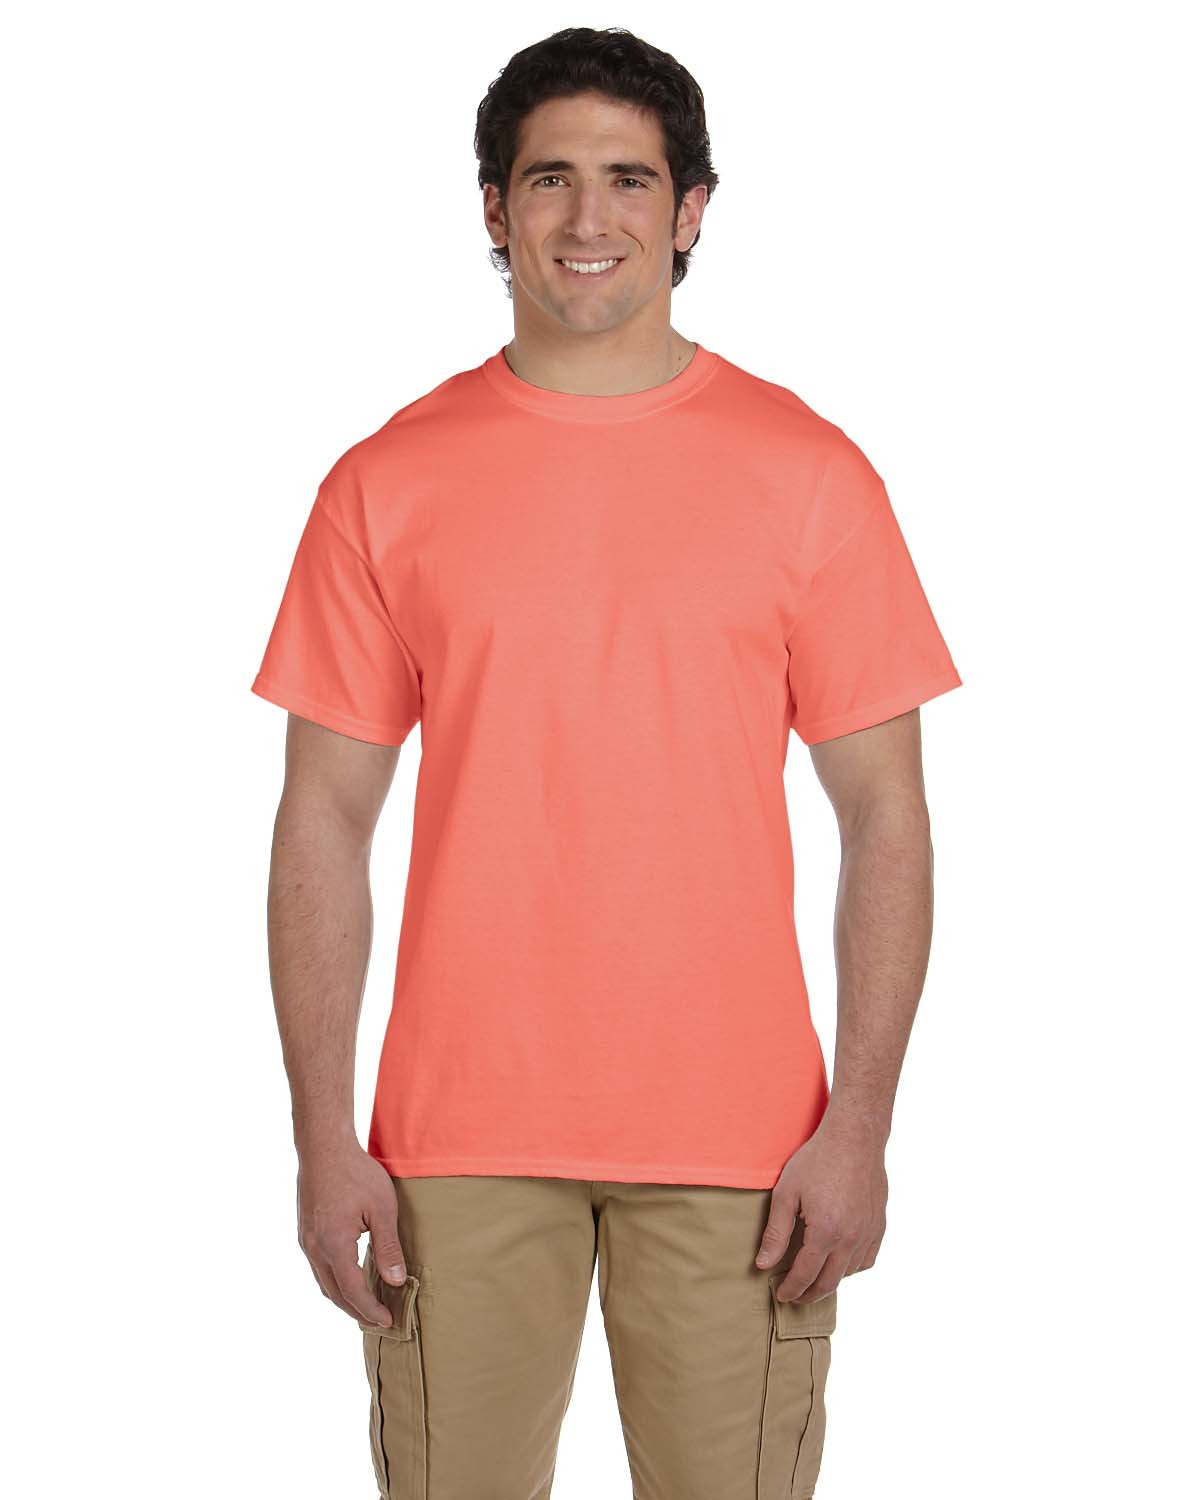 3931 Fruit of the Loom RETRO HTH CORAL